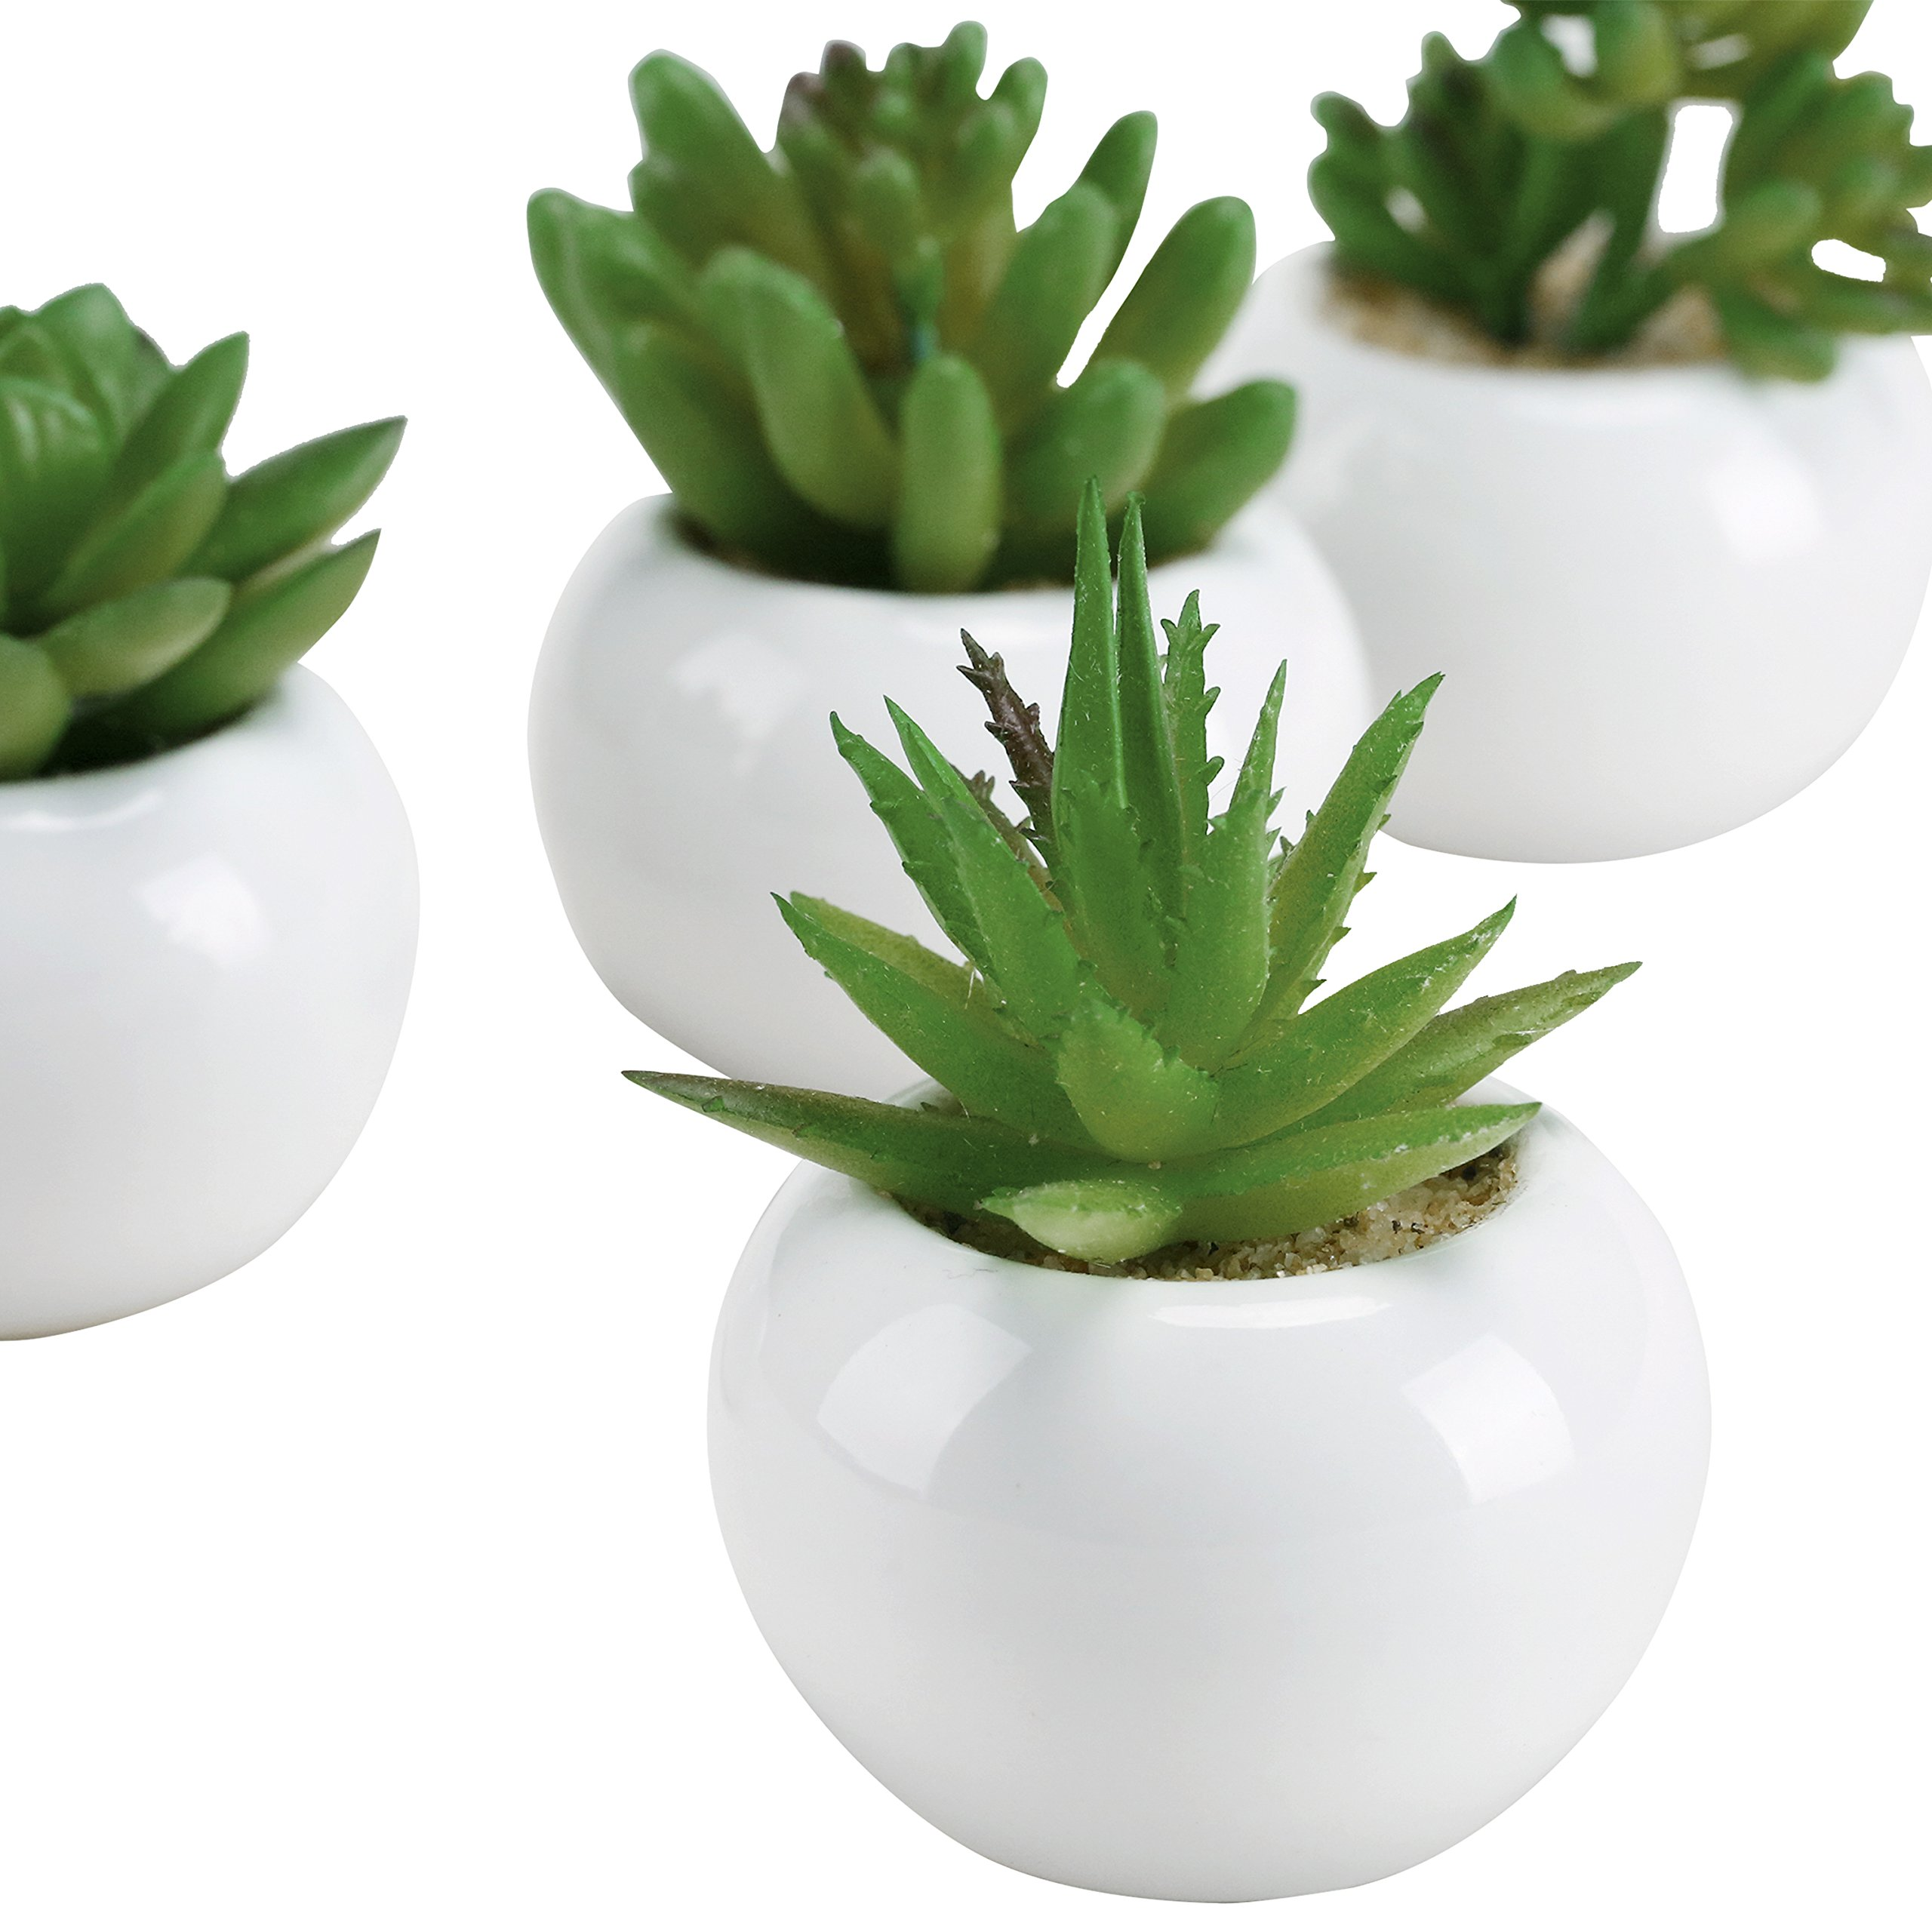 3-inch Mixed Green Artificial Succulent Plants in Round Glazed White Ceramic Pots, Set of 4 by MyGift (Image #4)